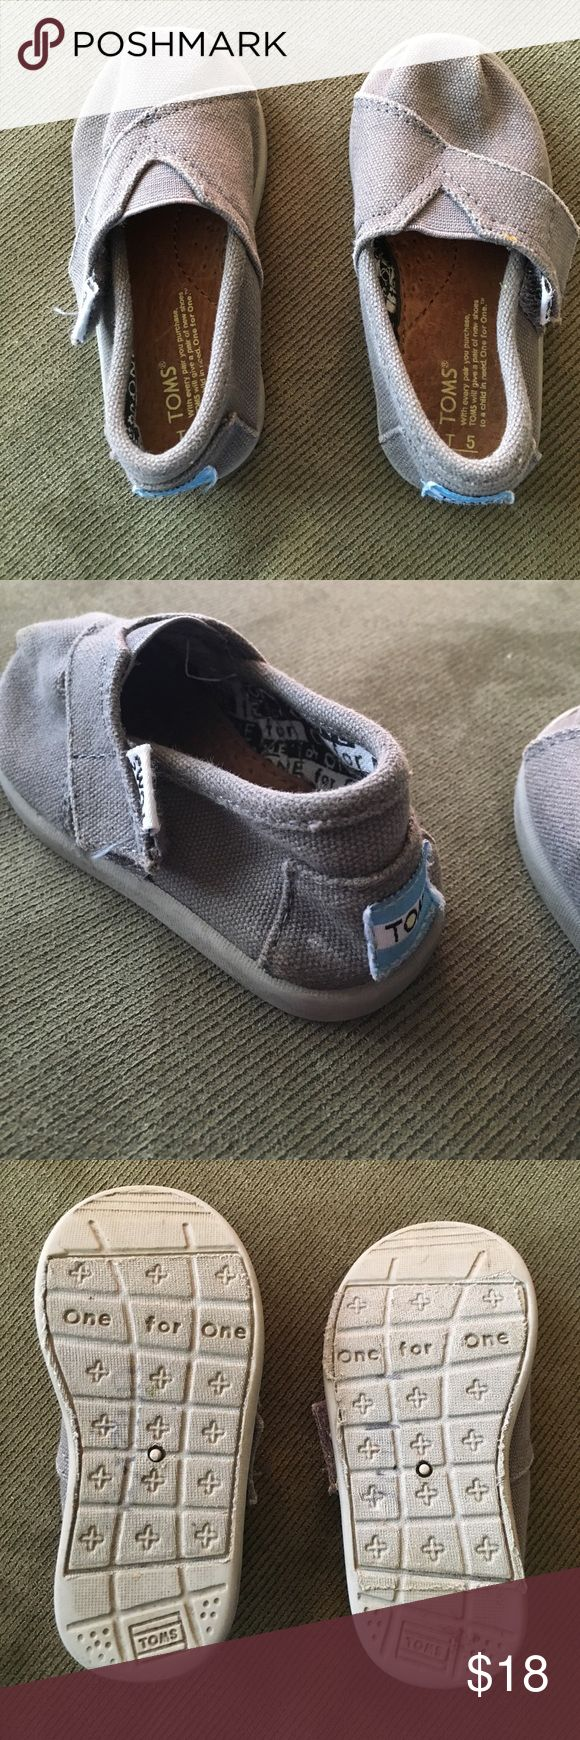 Gray Toms toddler size 5 Excellent condition, adorable gray Toms. TOMS Shoes Moccasins